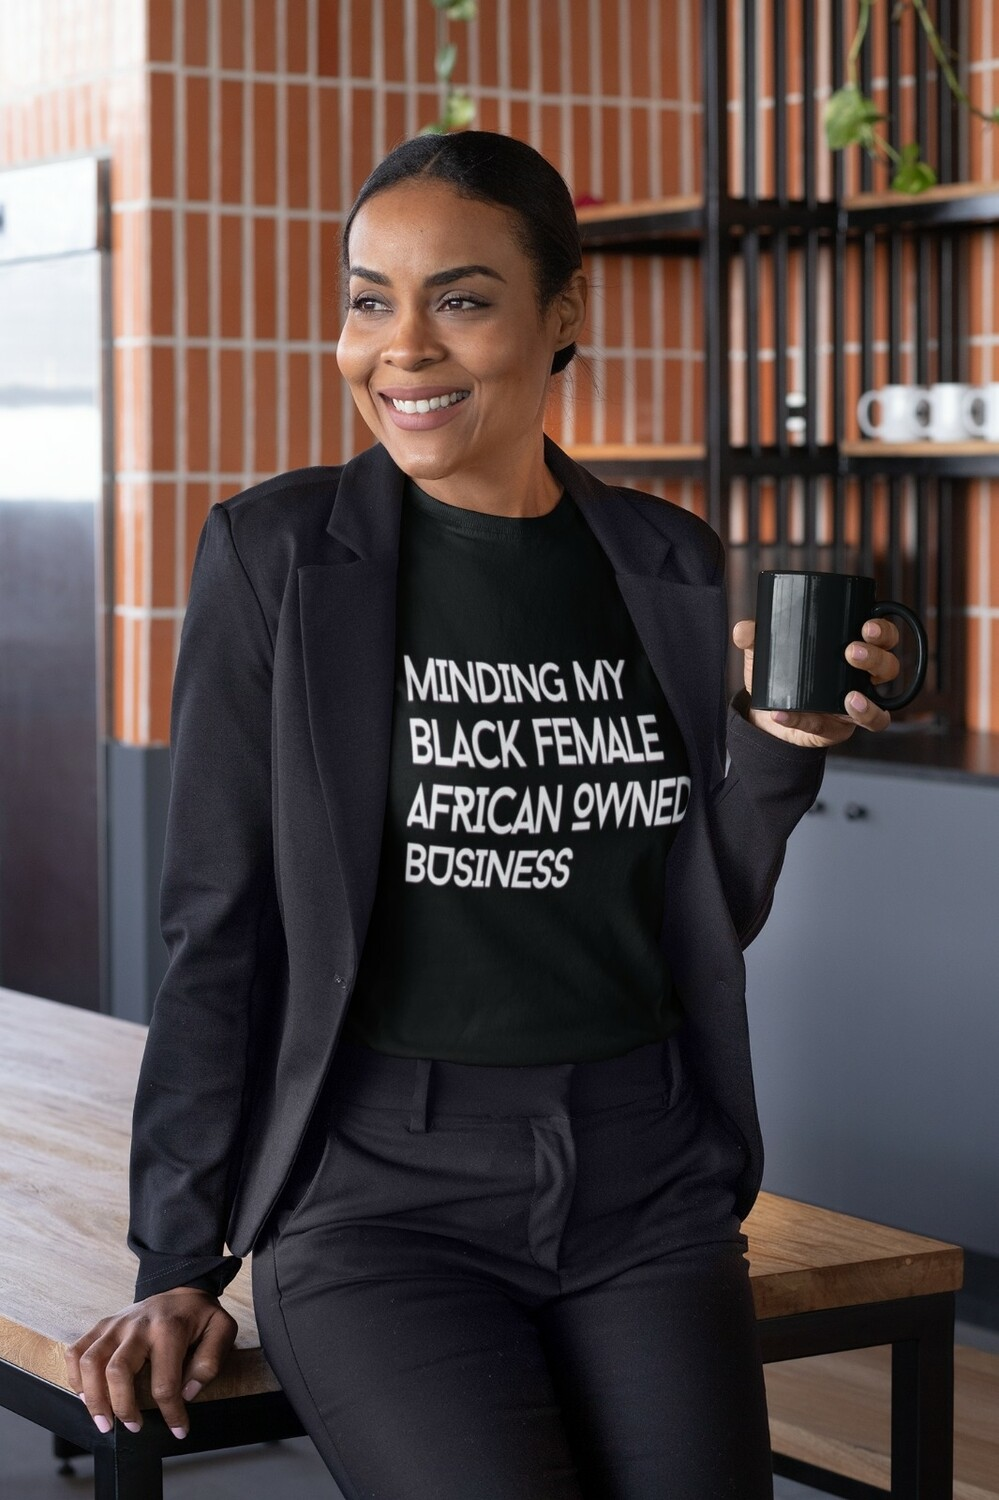 The 'Minding My Black Female African/Caribbean/ British Owned Business' T-Shirt